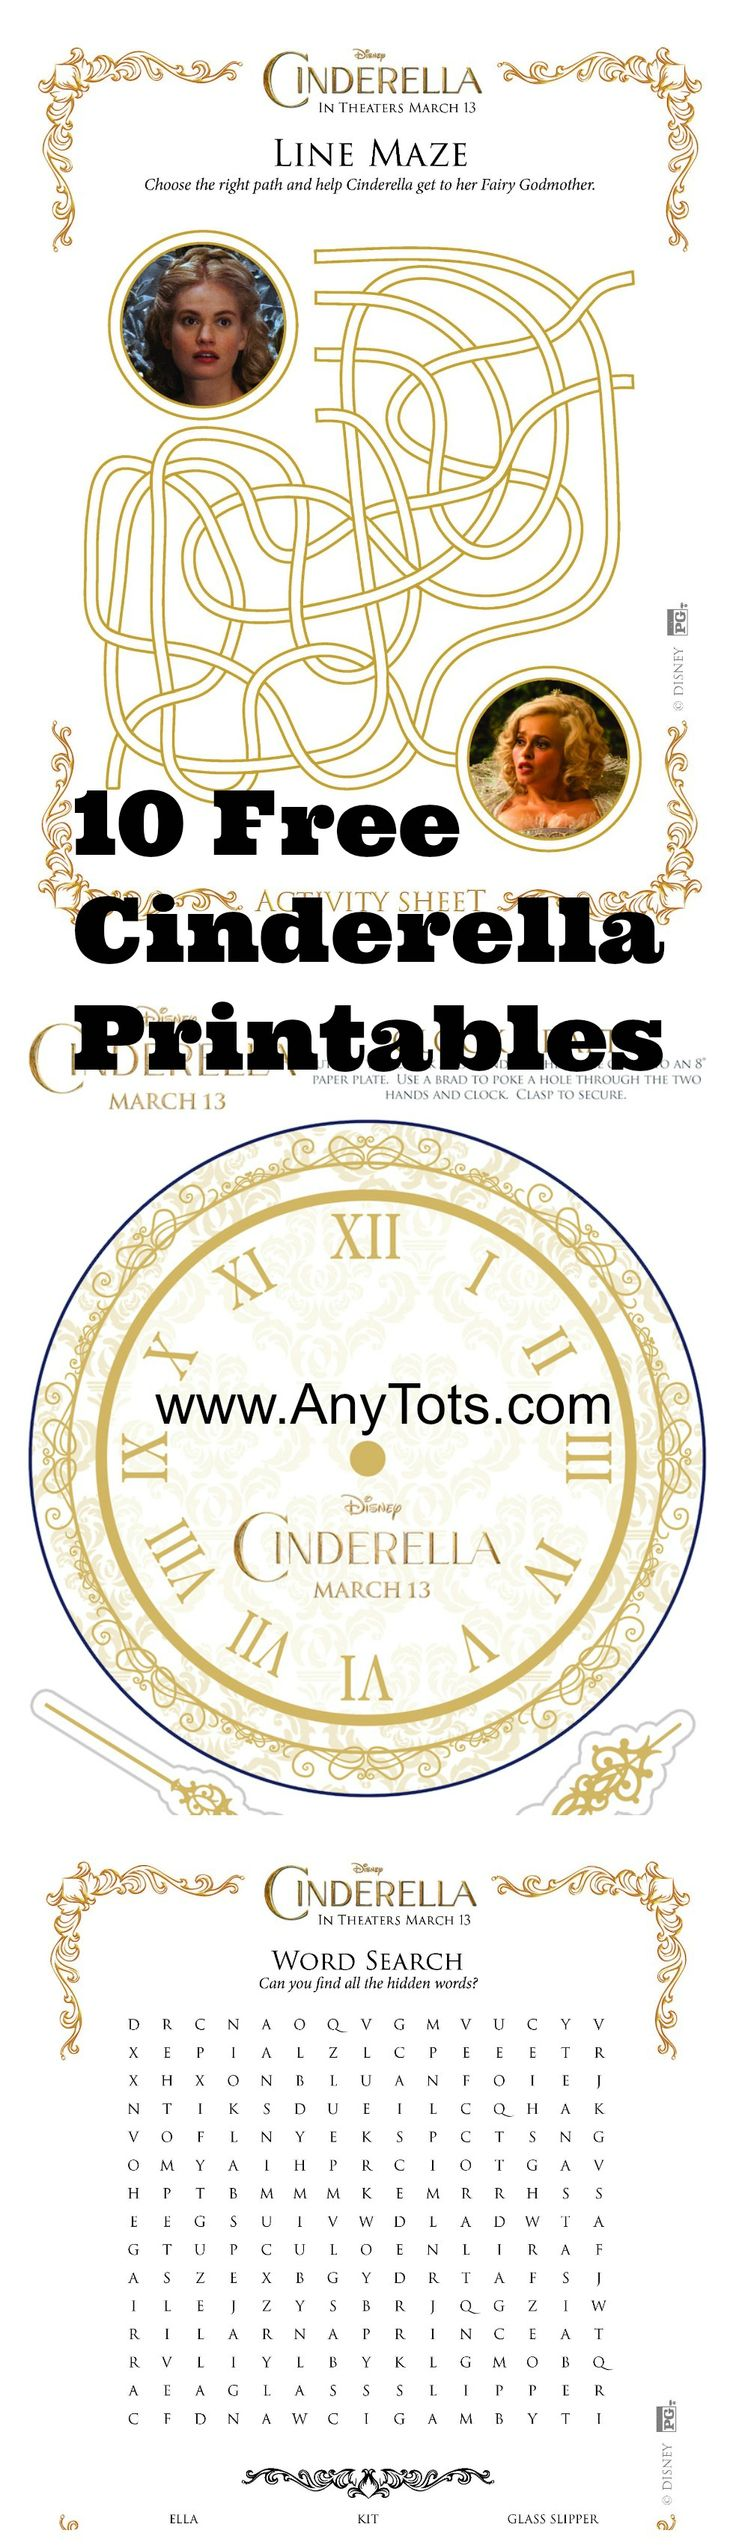 Free Cinderella Party Printables. 10 Cinderella Activty Sheets, Craft, Games to print for the kids. #Cinderella